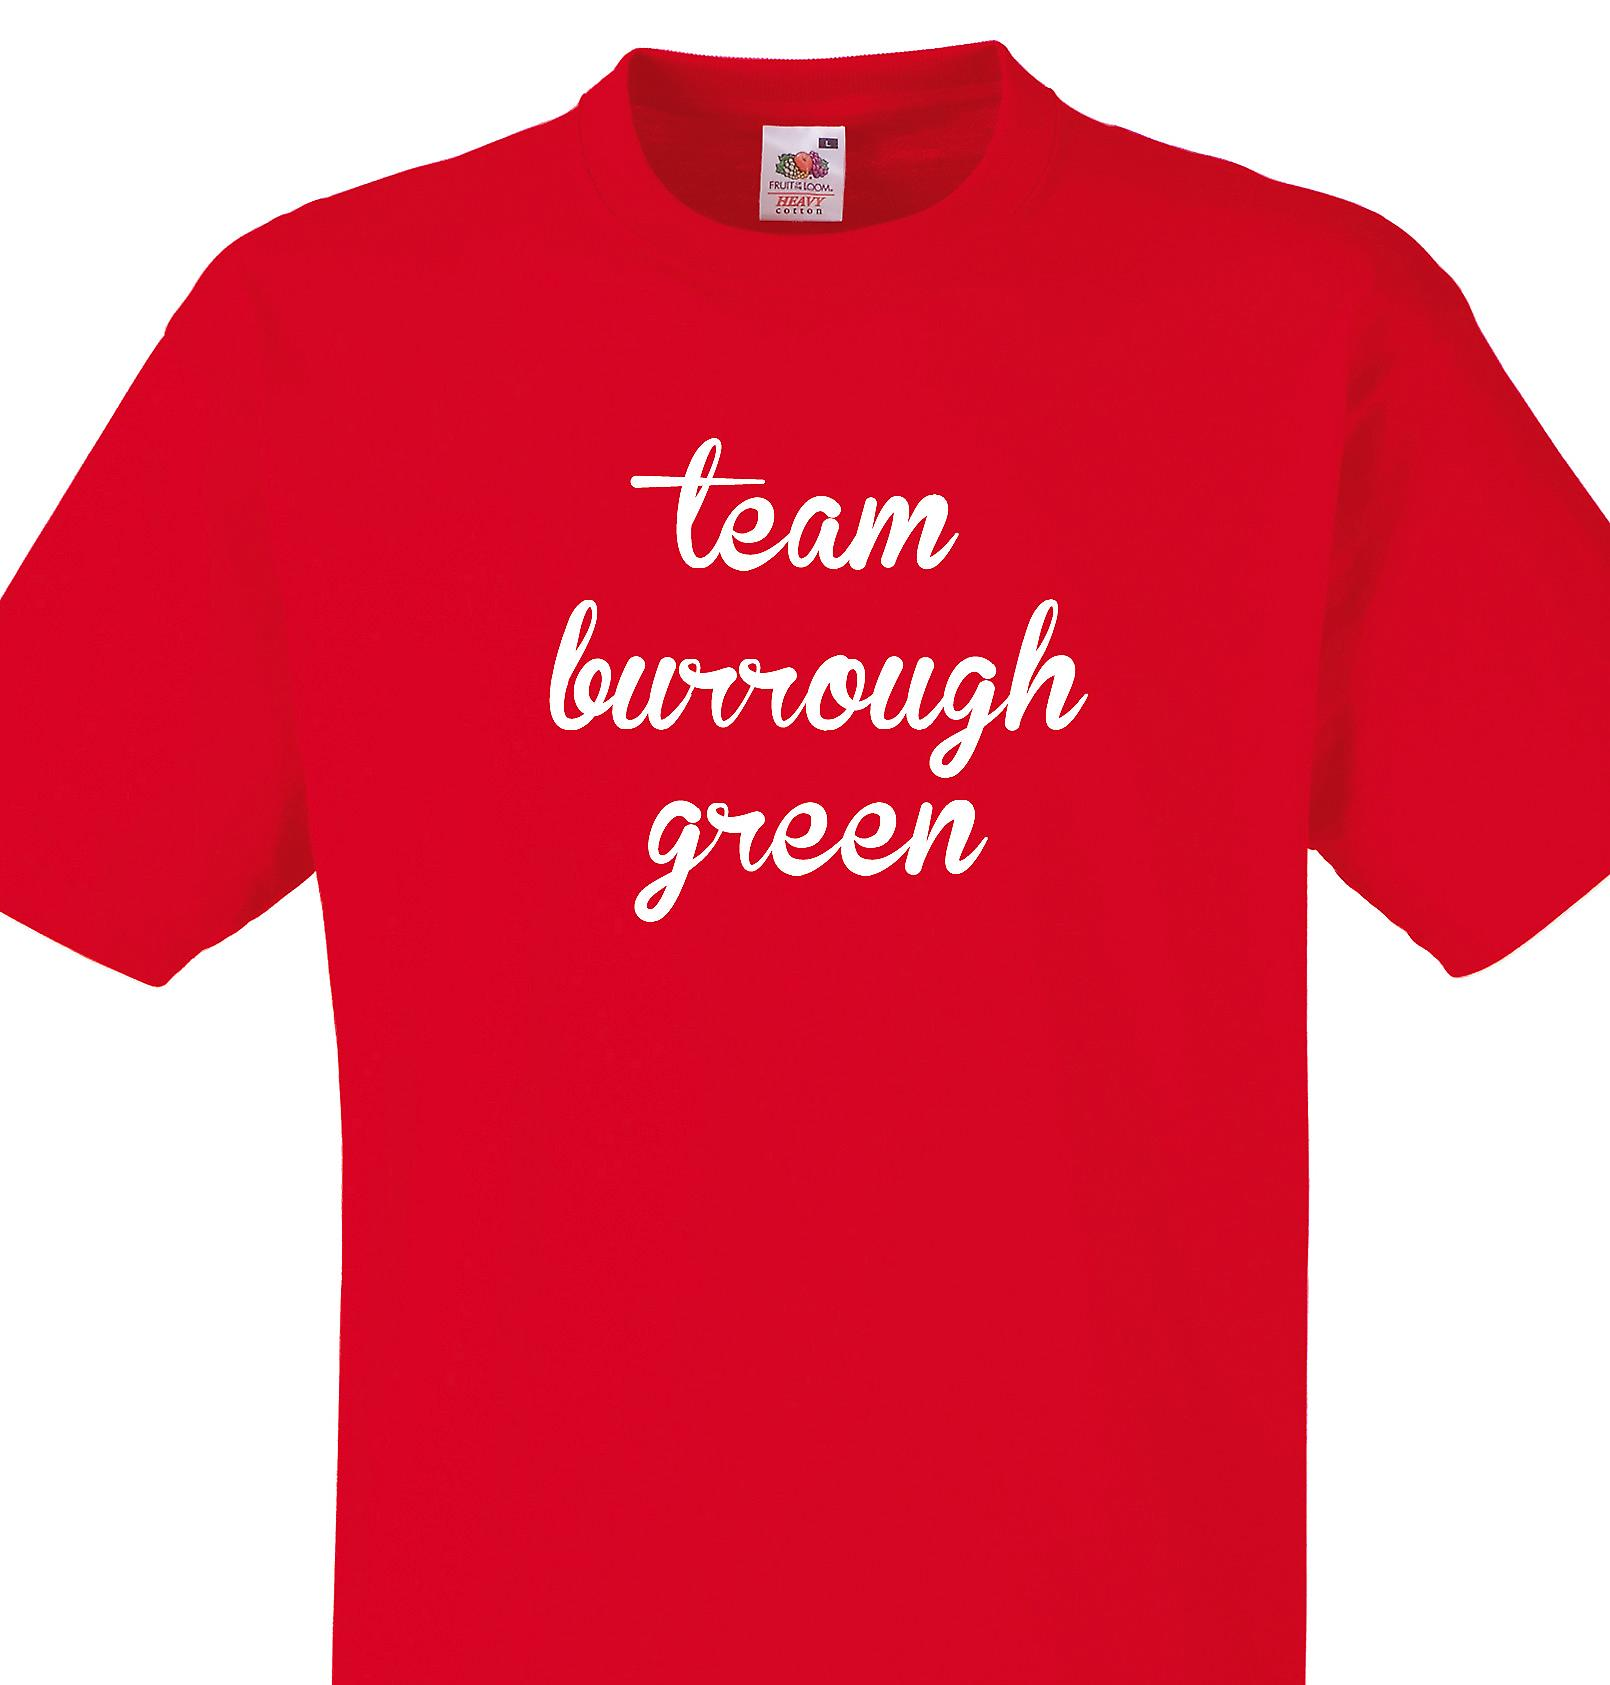 Team Burrough green Red T shirt